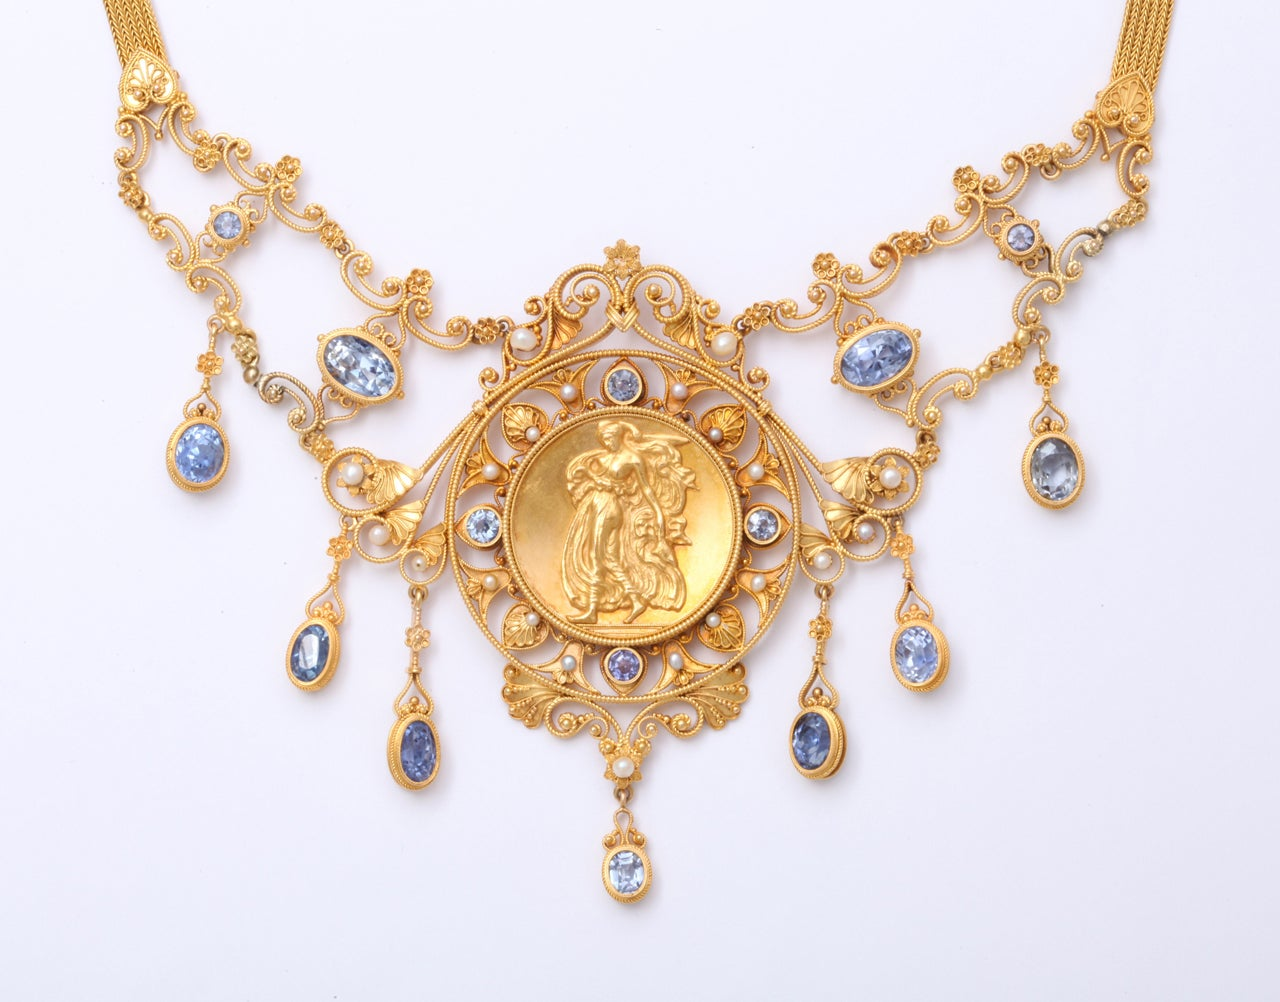 Antique 19th Century Italian Renaissance Pearl Sapphire Gold Necklace At 1stdibs